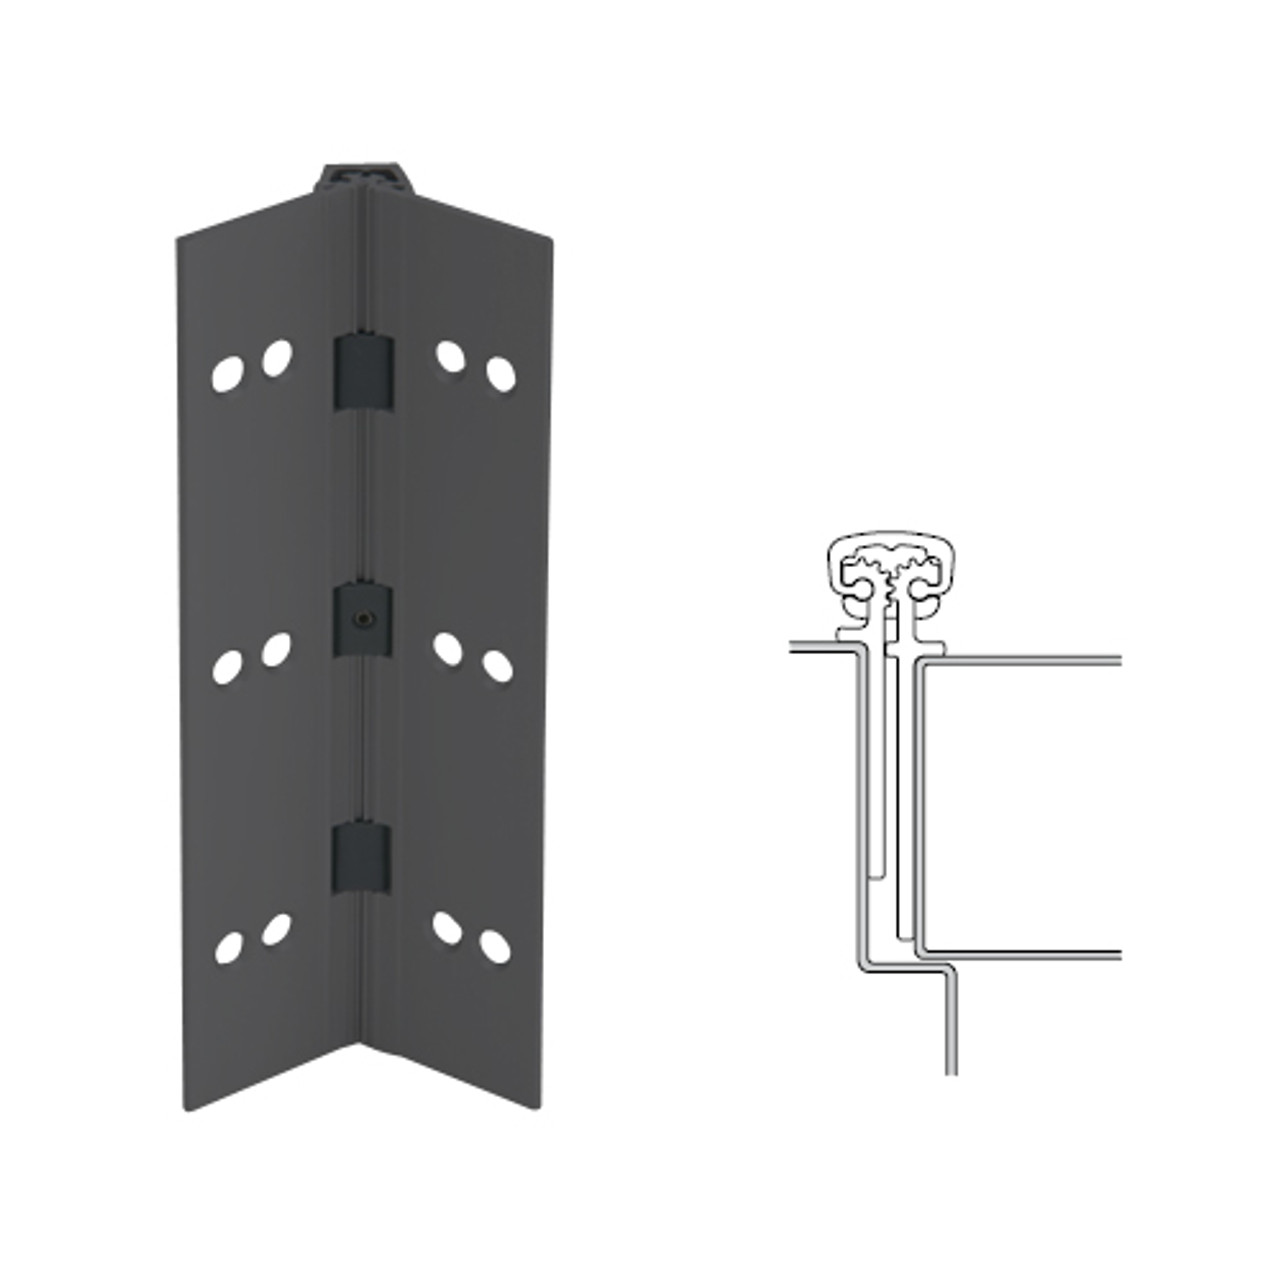 026XY-315AN-85-SECHM IVES Full Mortise Continuous Geared Hinges with Security Screws - Hex Pin Drive in Anodized Black